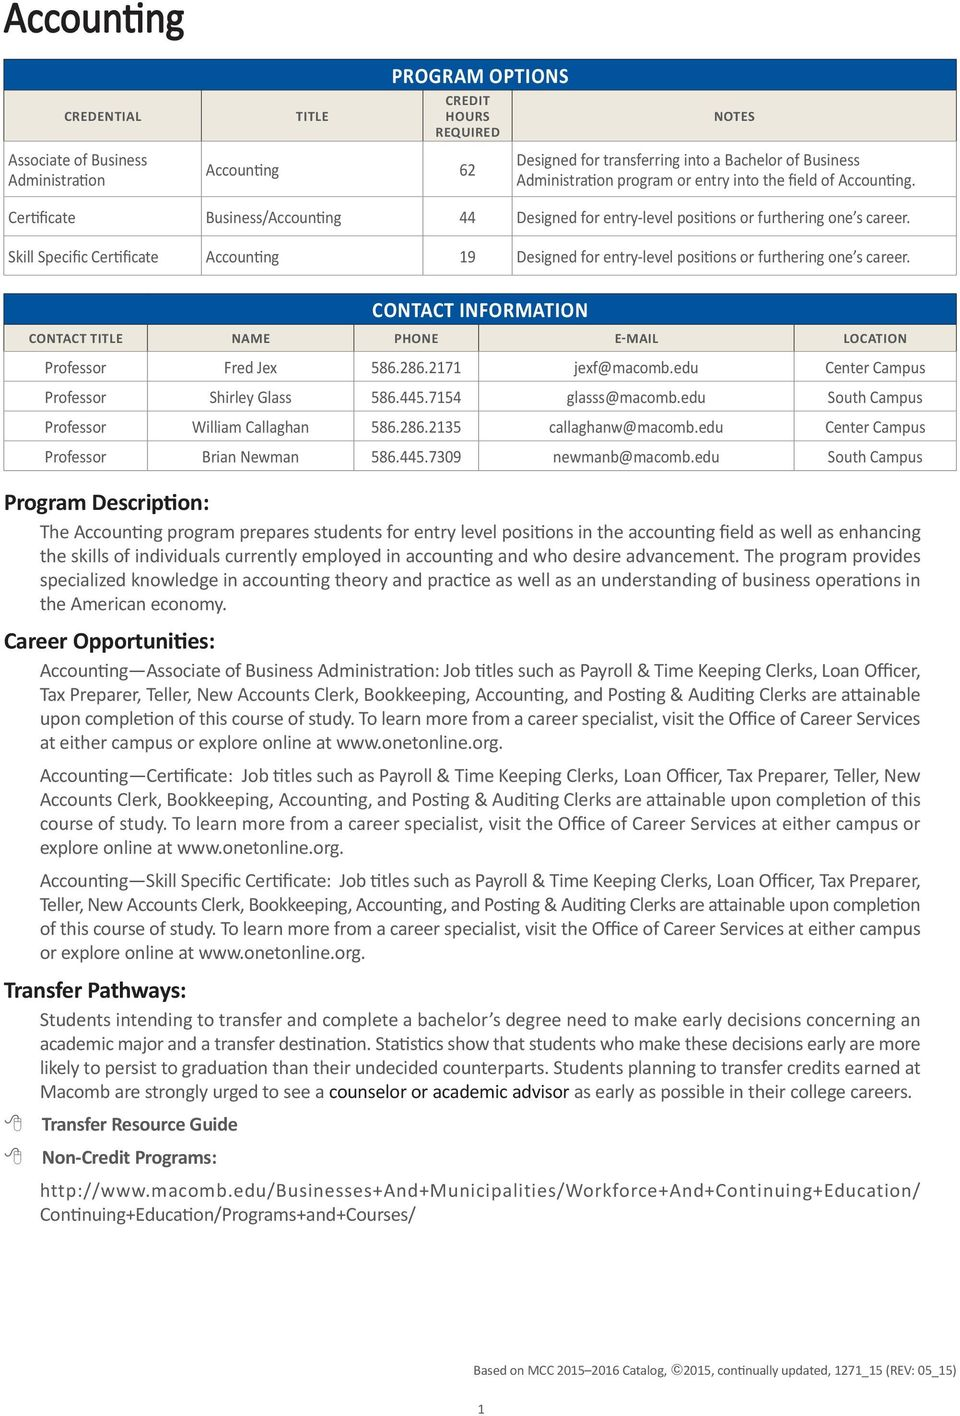 What jobs can I get with a Bachelor's in Entrepreneurship/Small Business Management degree?